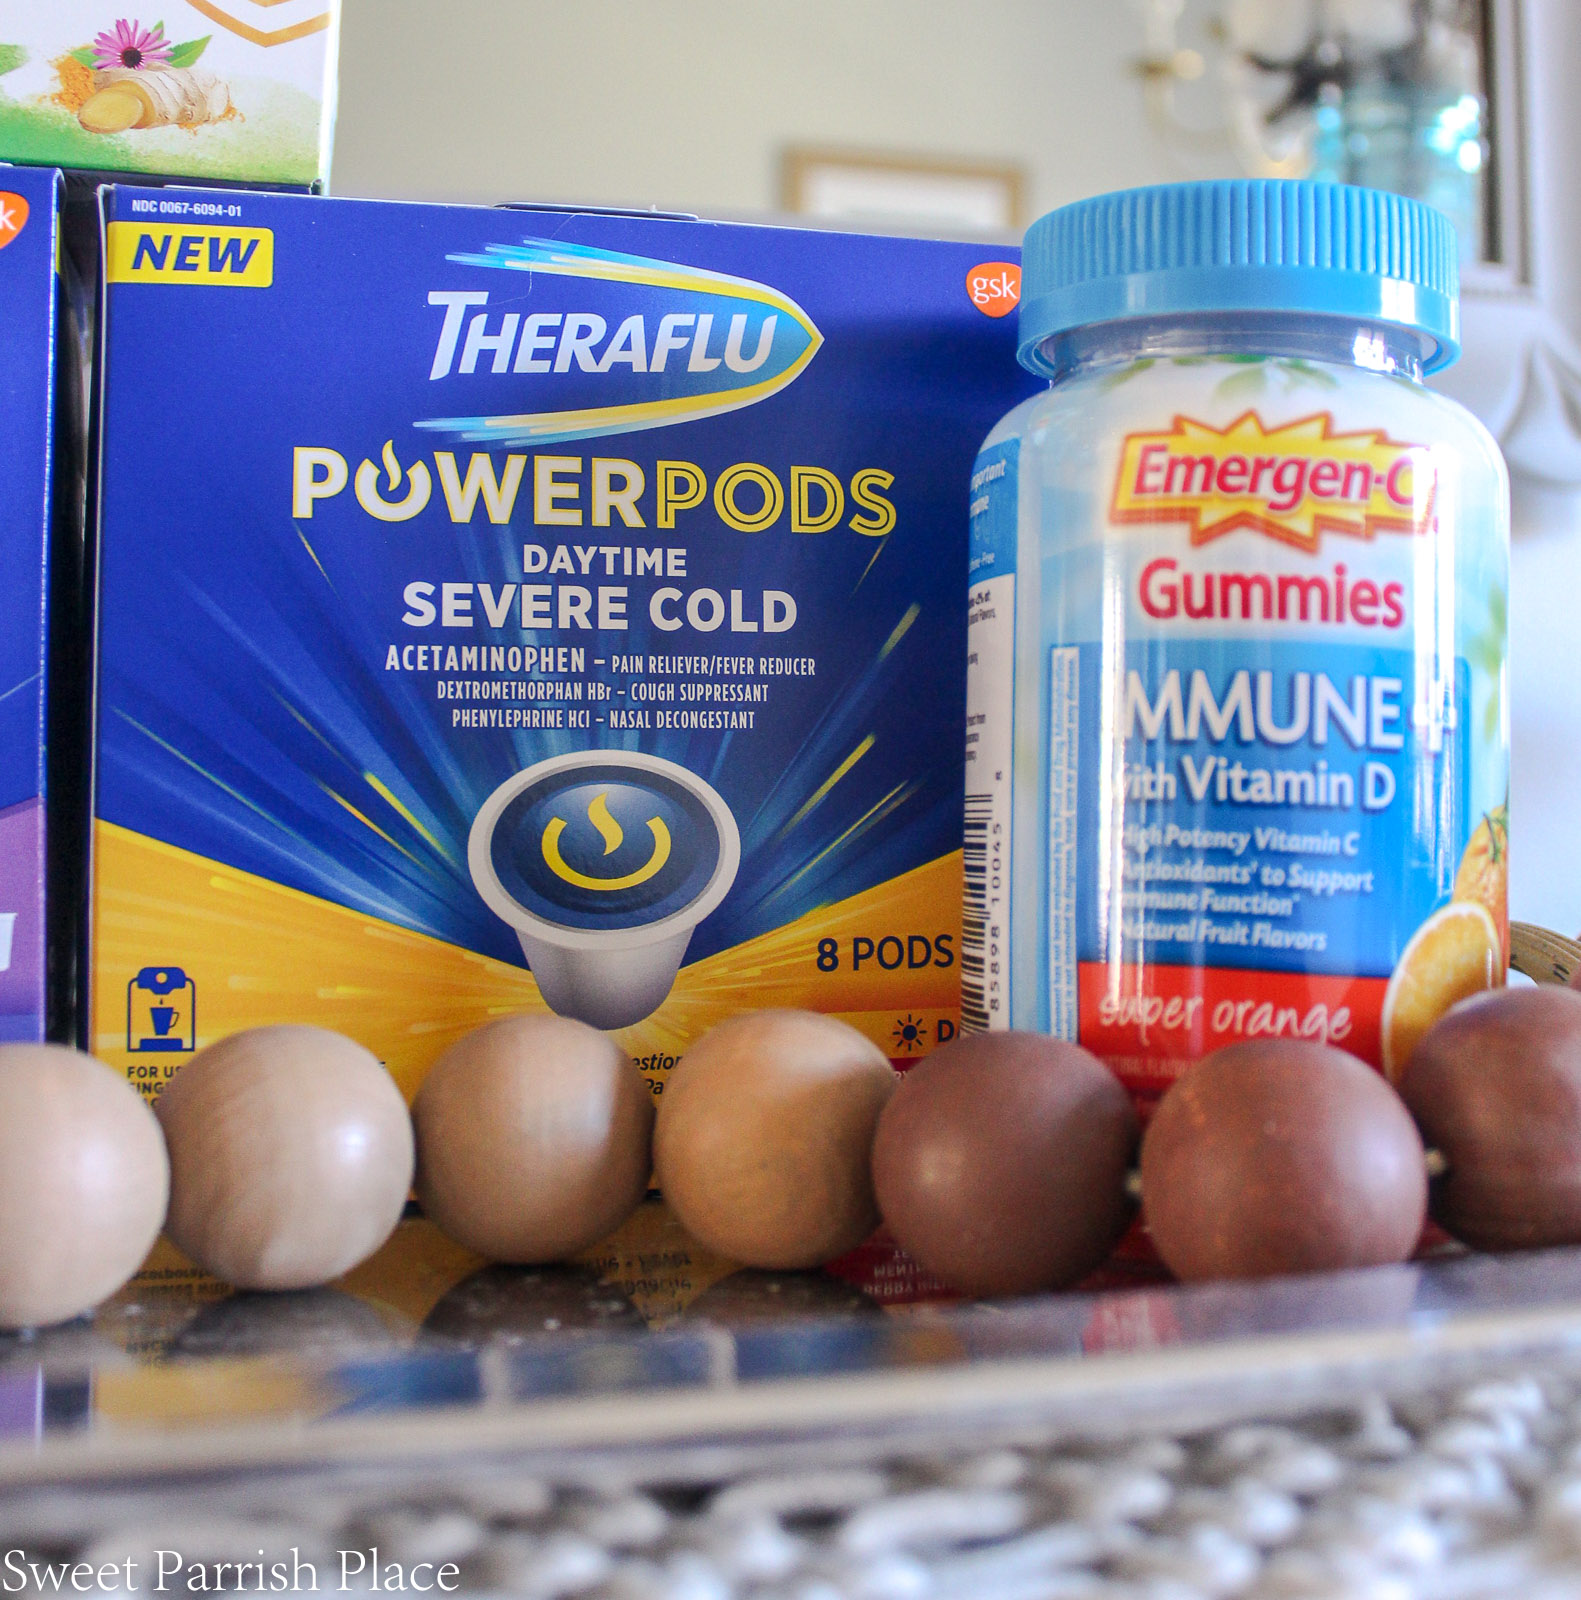 Theraflu power pods and Emergen-C gummies 7 Self Care Tips For Sick Moms